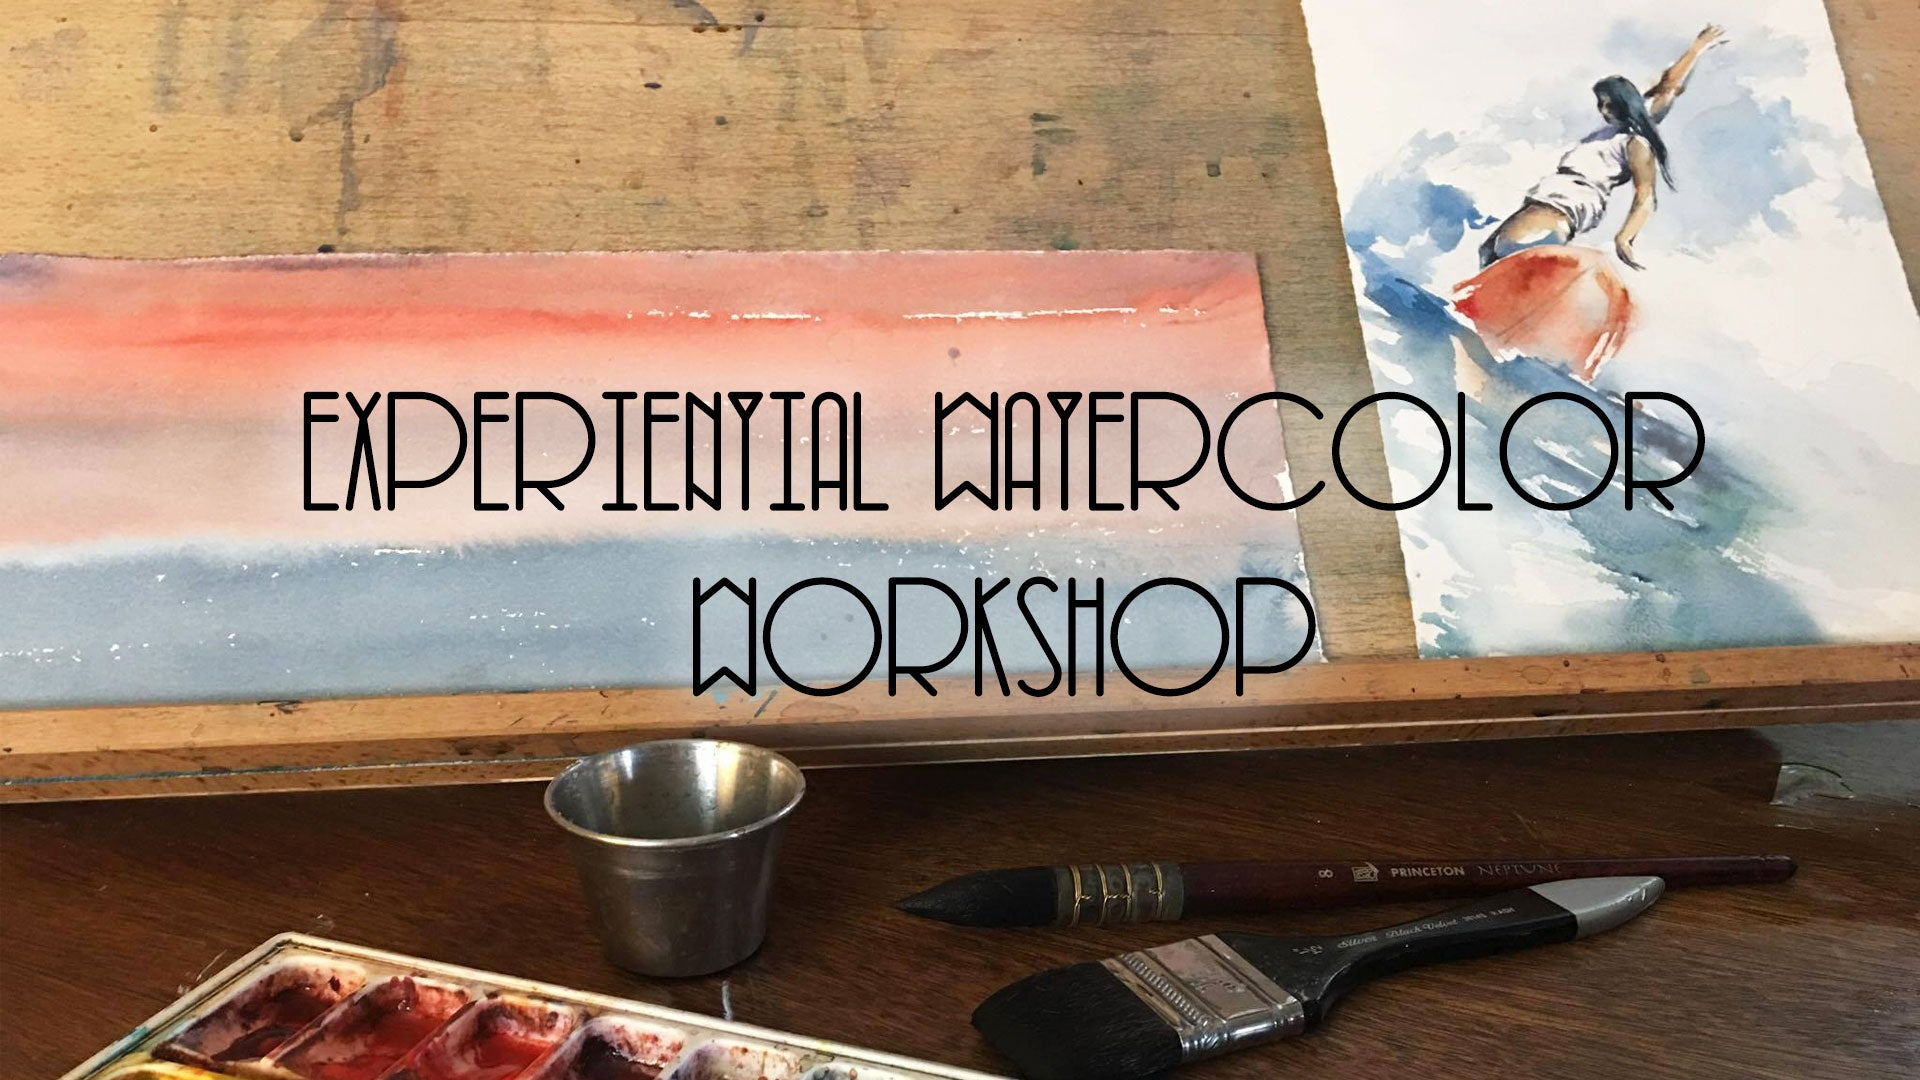 Experiential Watercolor Workshop